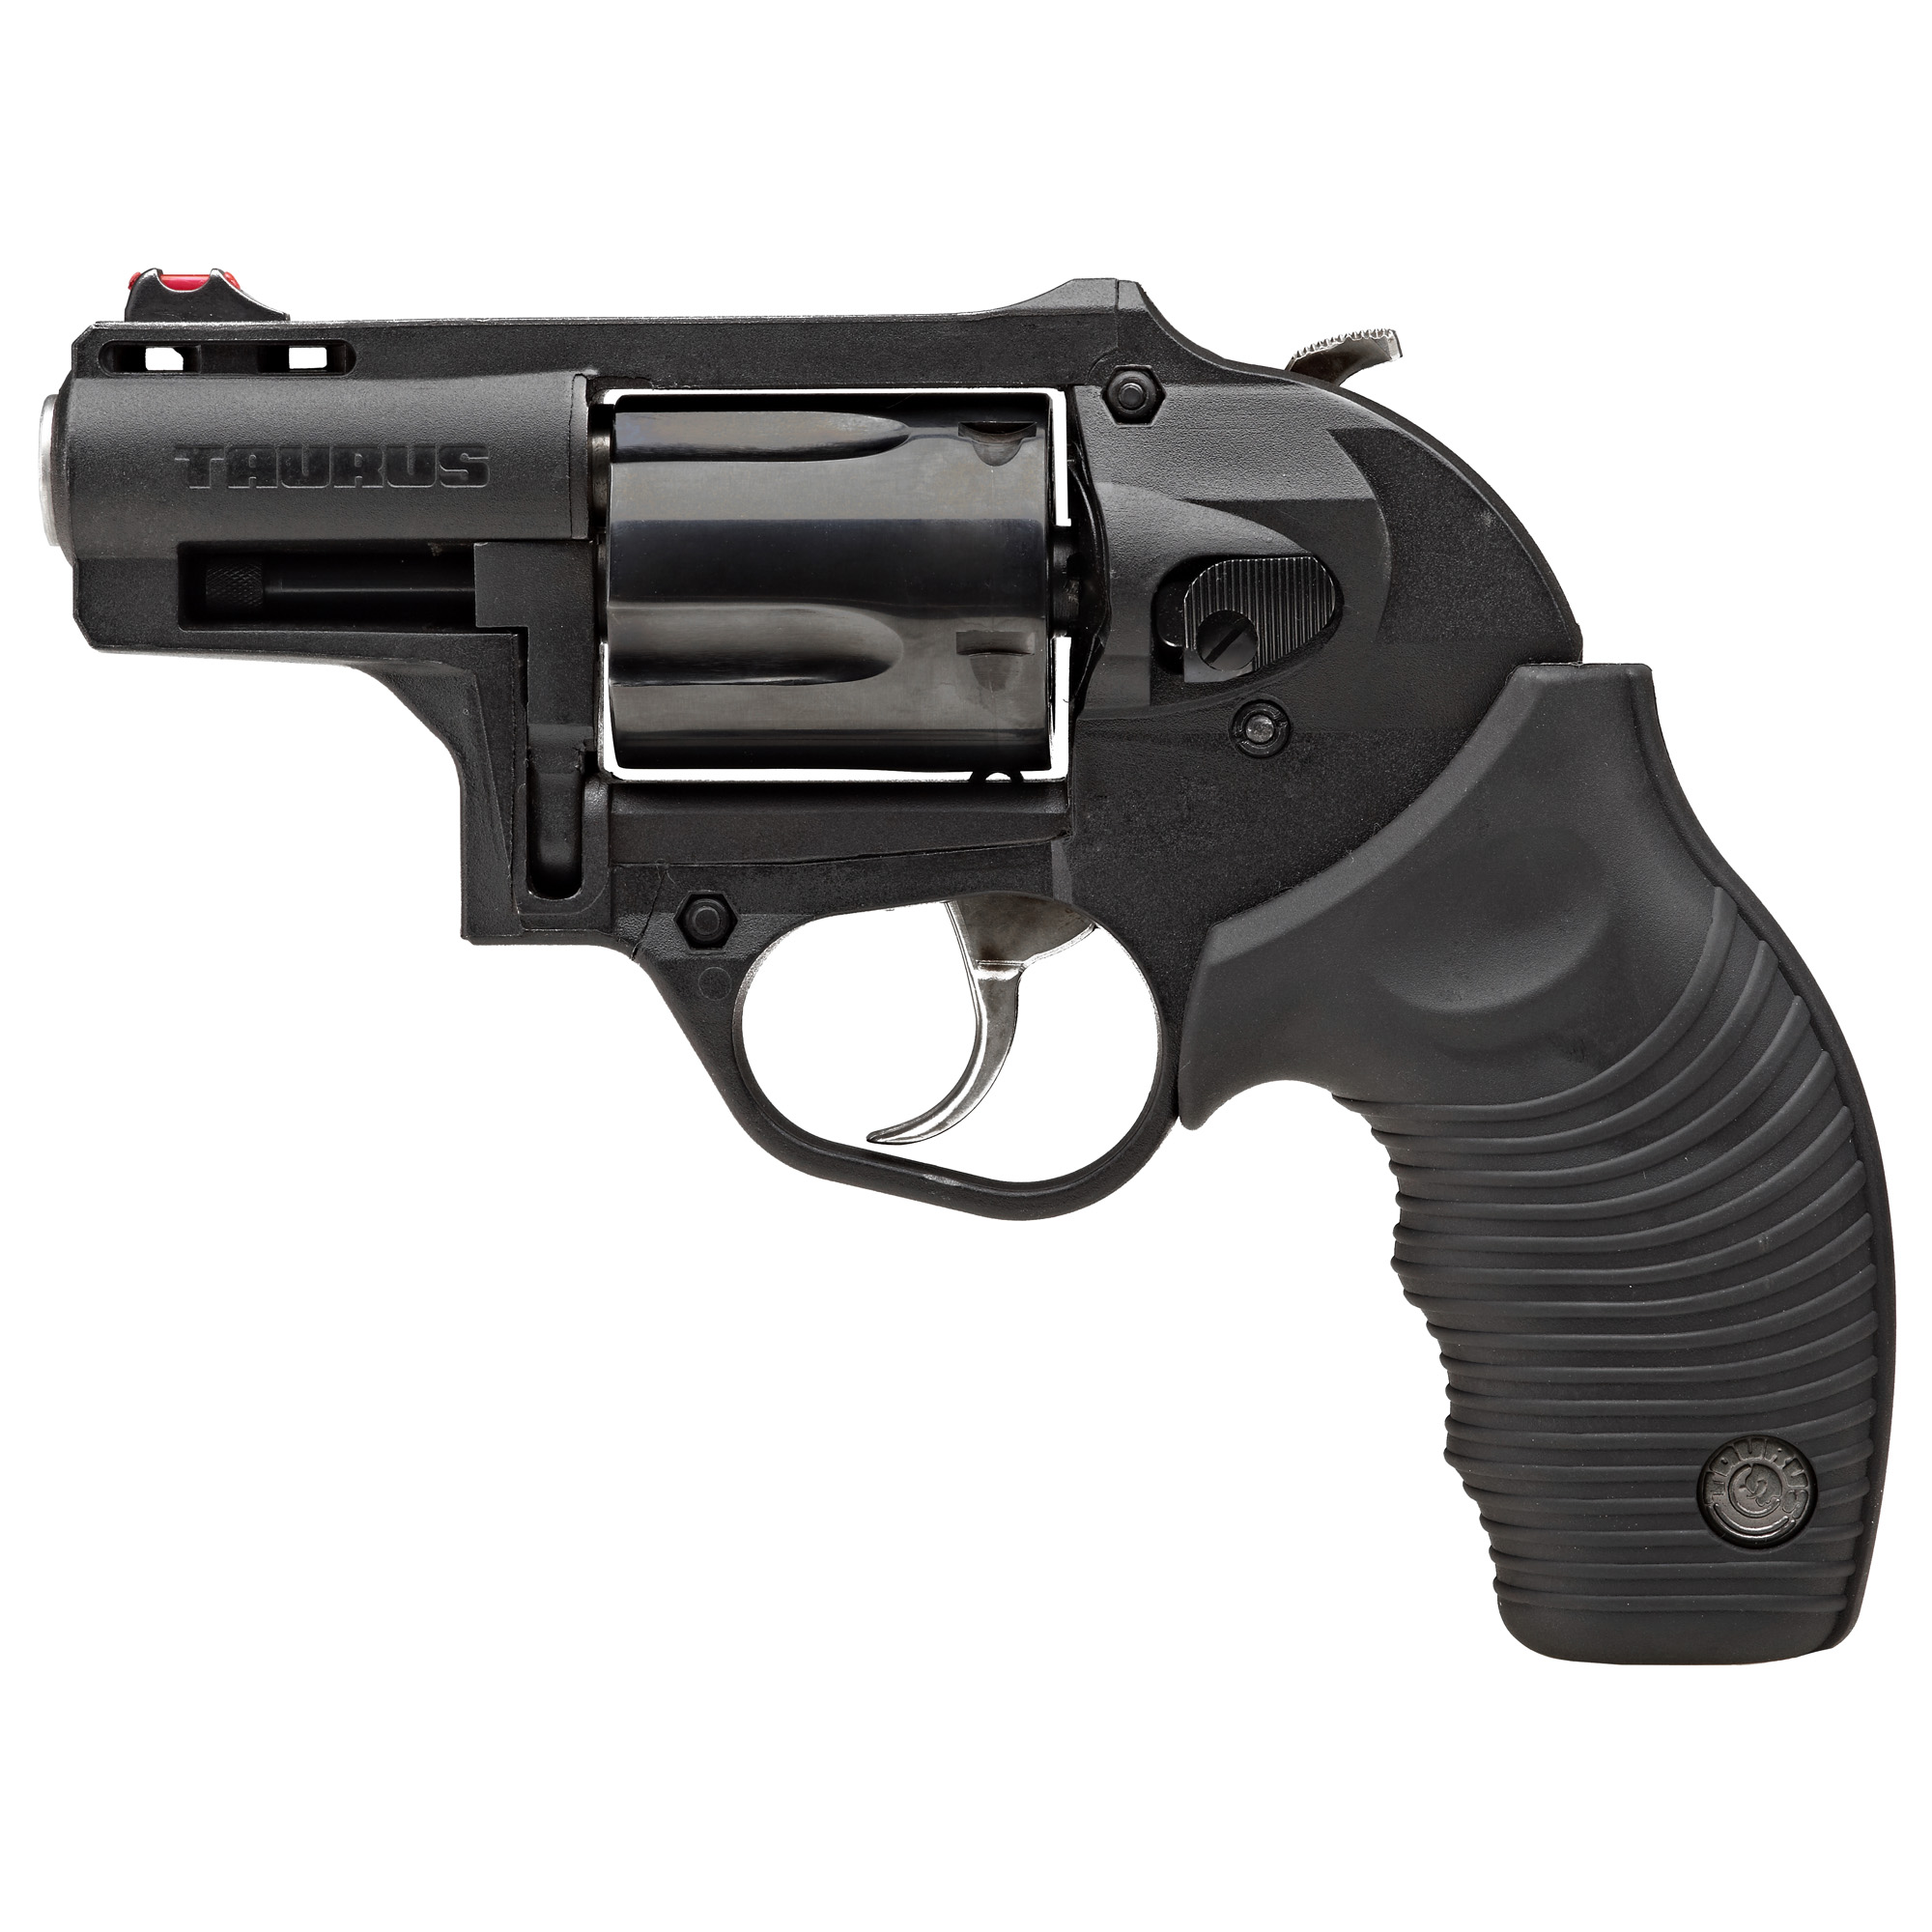 The new DT .357 Magnum Revolver is built to the same high standards you'd expect from Taurus. It comes ready for trouble with a new lightweight polymer body.